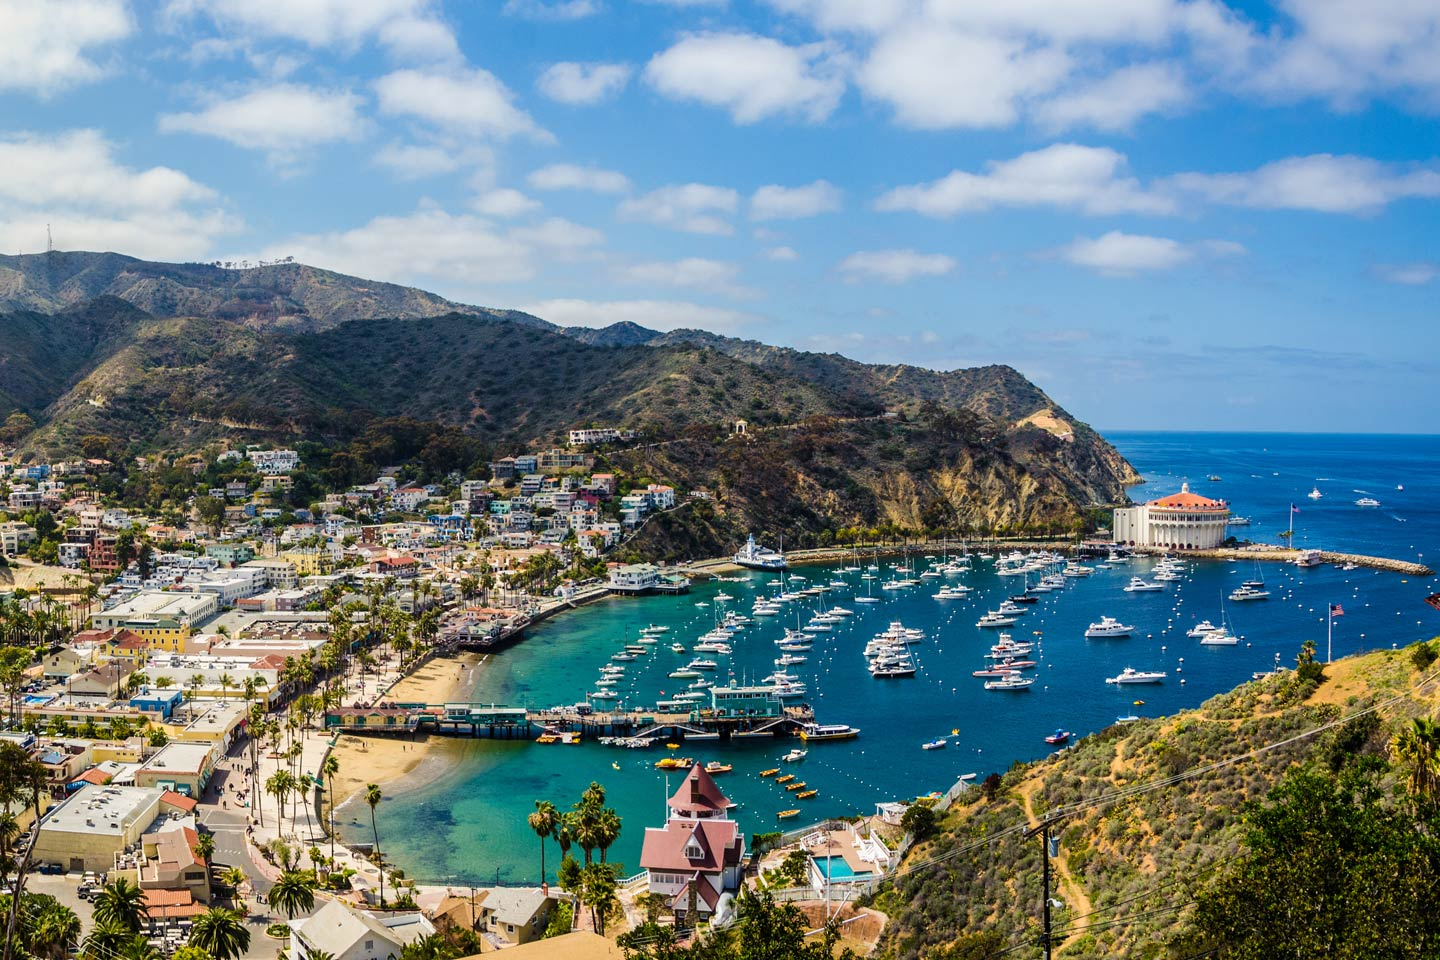 An aerial view of boats docked in the Avalon Bay on Catalina Island.